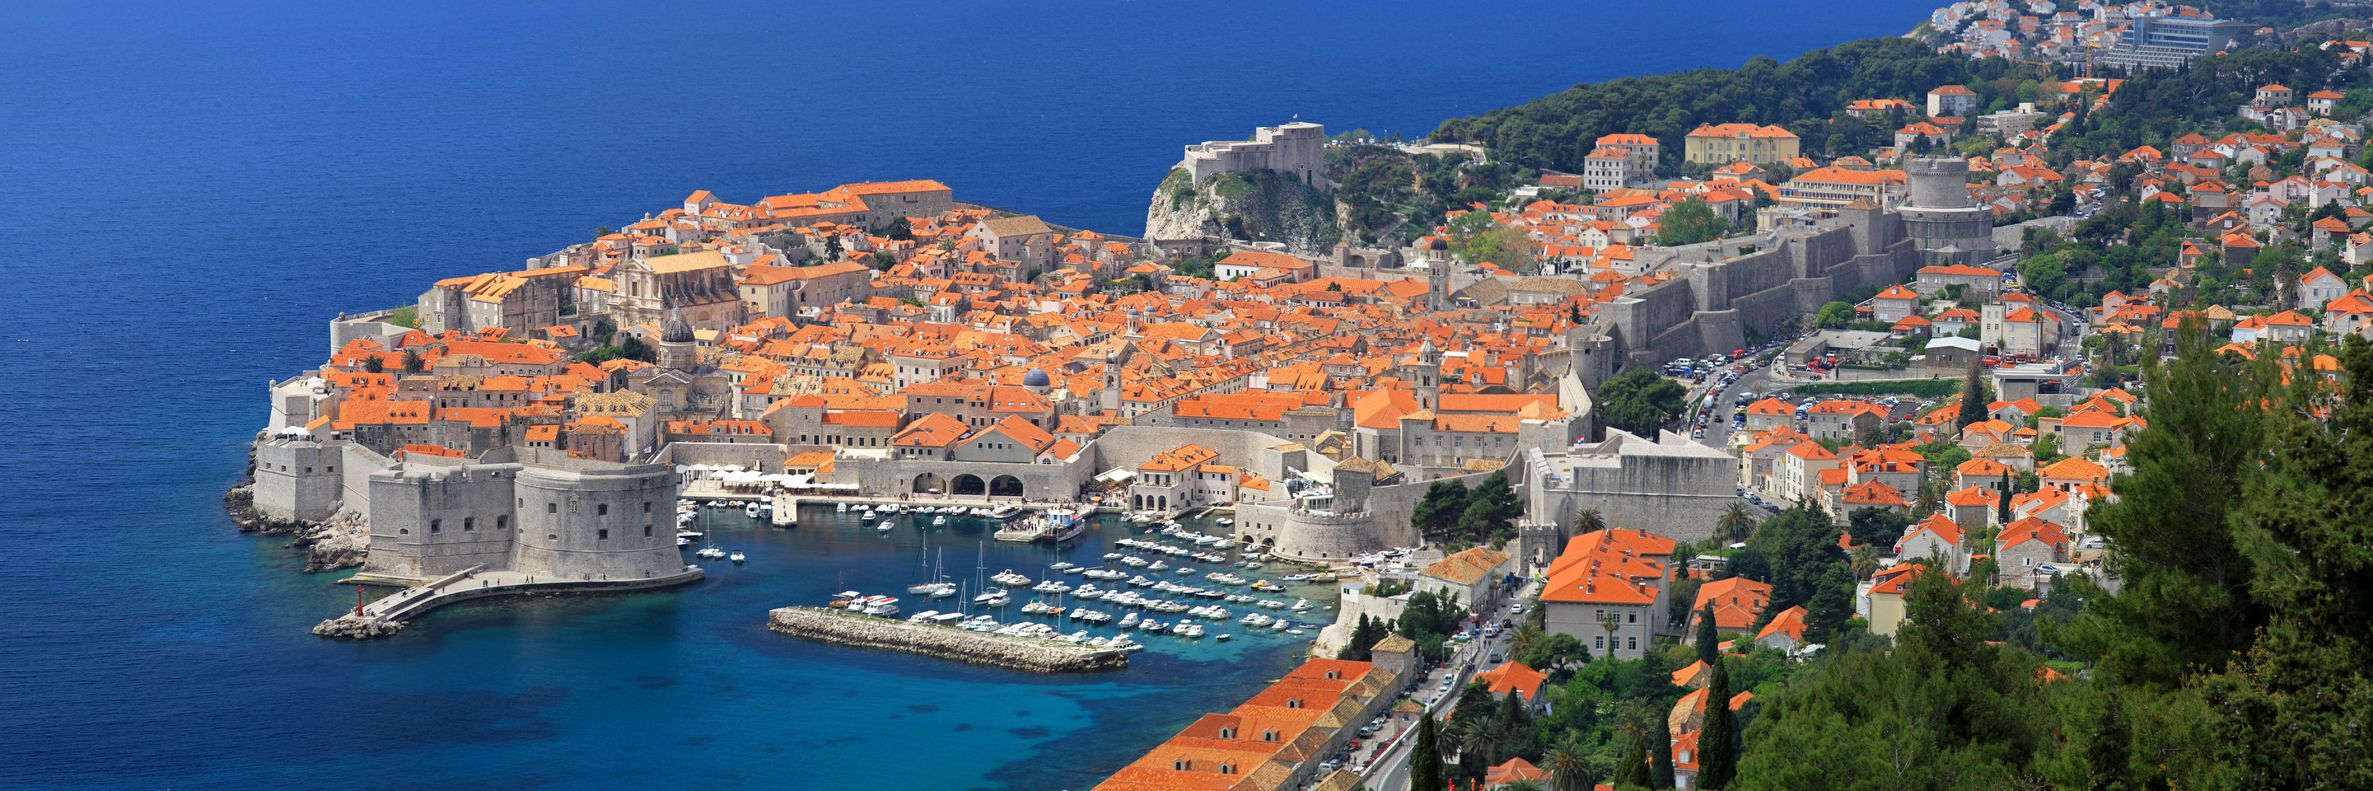 Transfer from Dubrovnik Airport to city Old Town